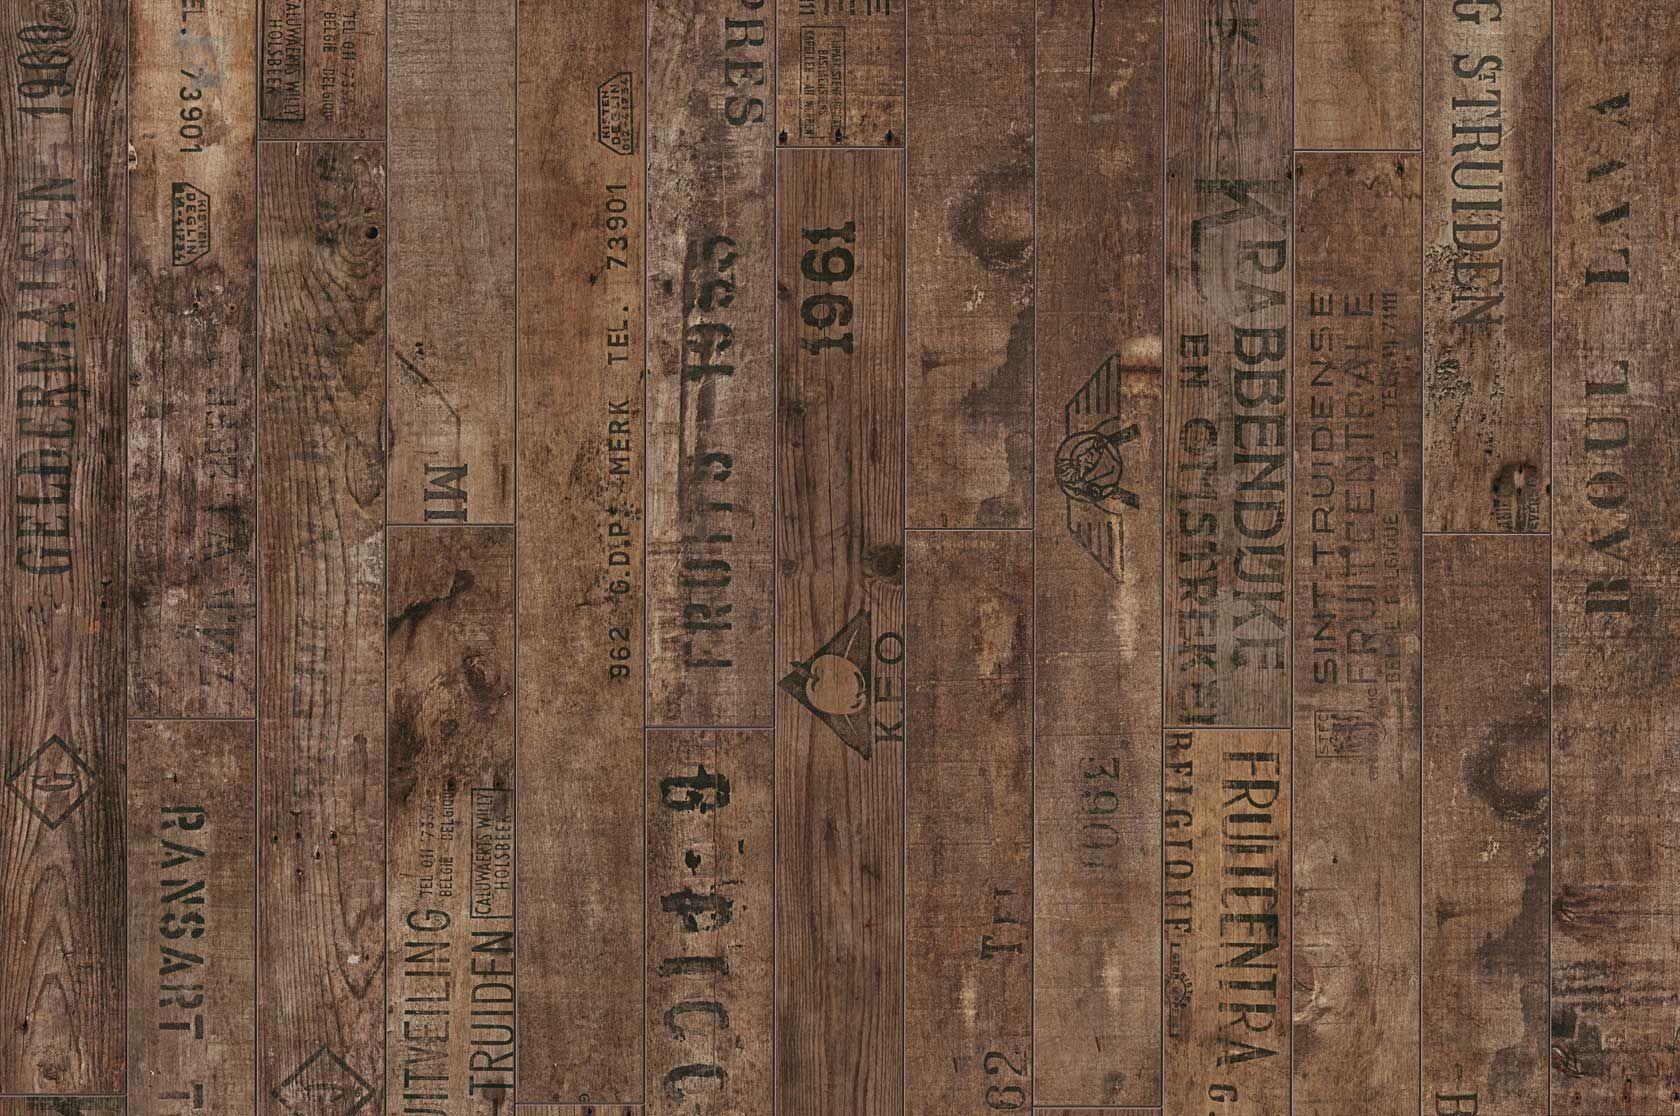 Küche Laminatboden Love This Laminate Floor With A Rustic Print Muster